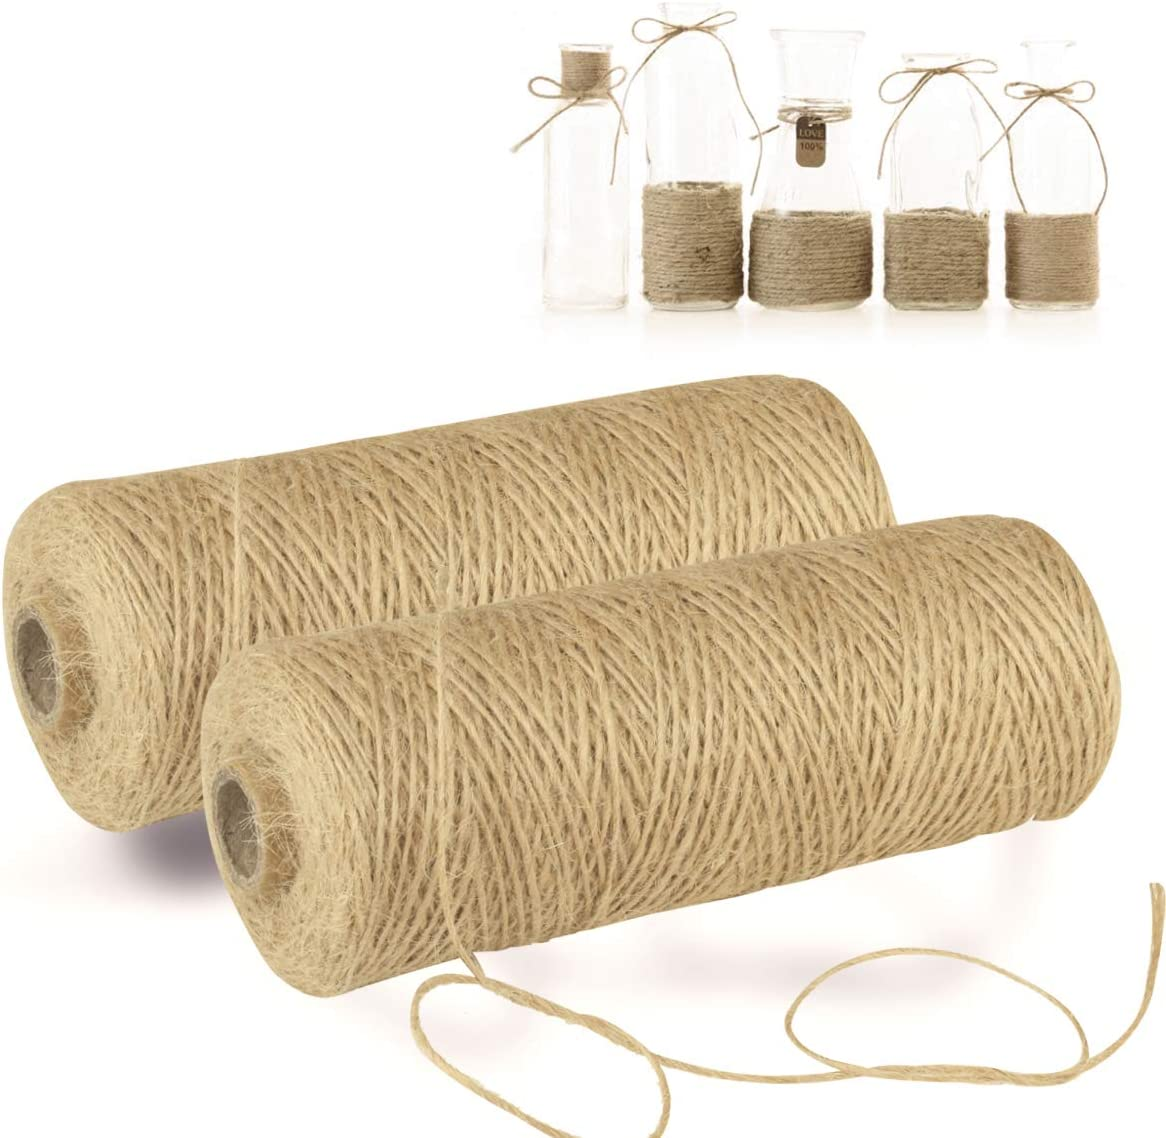 GHIFANT Natural Jute Twine String for DIY Craft 1mm//656feet Home Decorating Gift Packing Gardening. Cooking